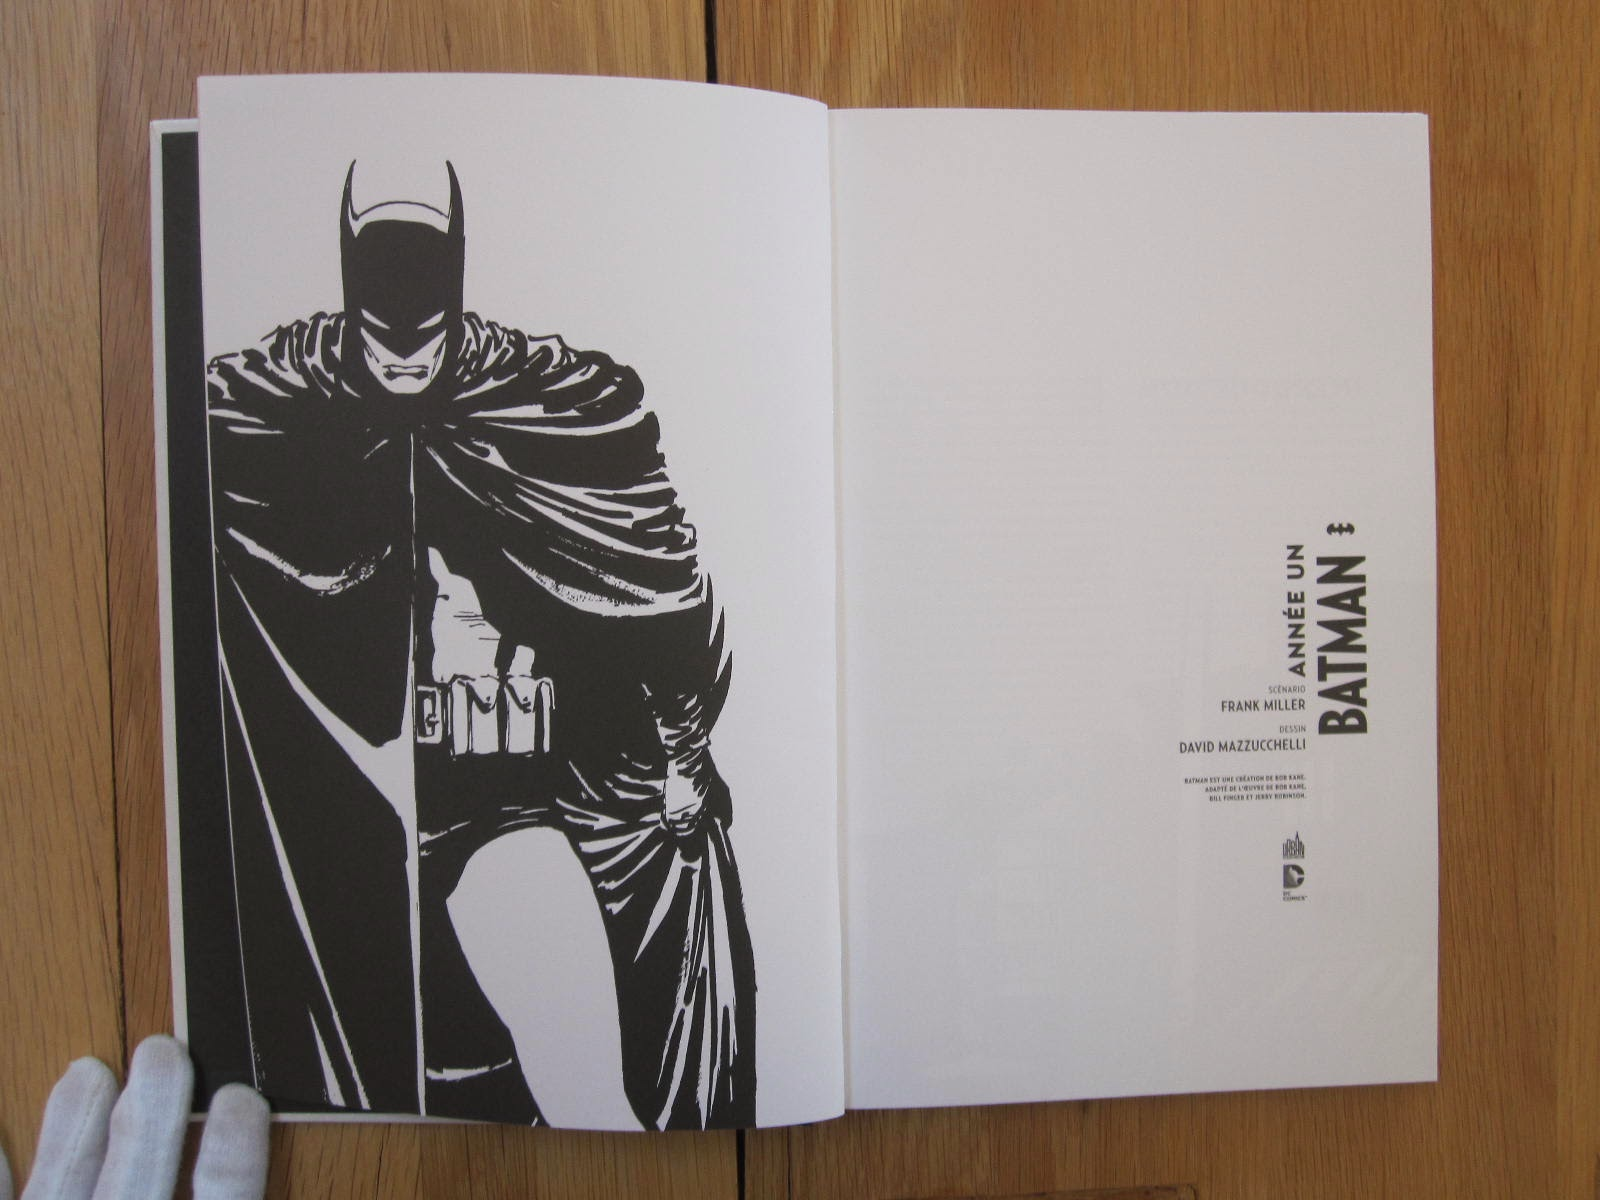 batman year one thesis For those not in the know, david mazzucchelli was the arist on batman: year one, one of the most realistic looks at batman in comics click to expand elaborate on this thesis.